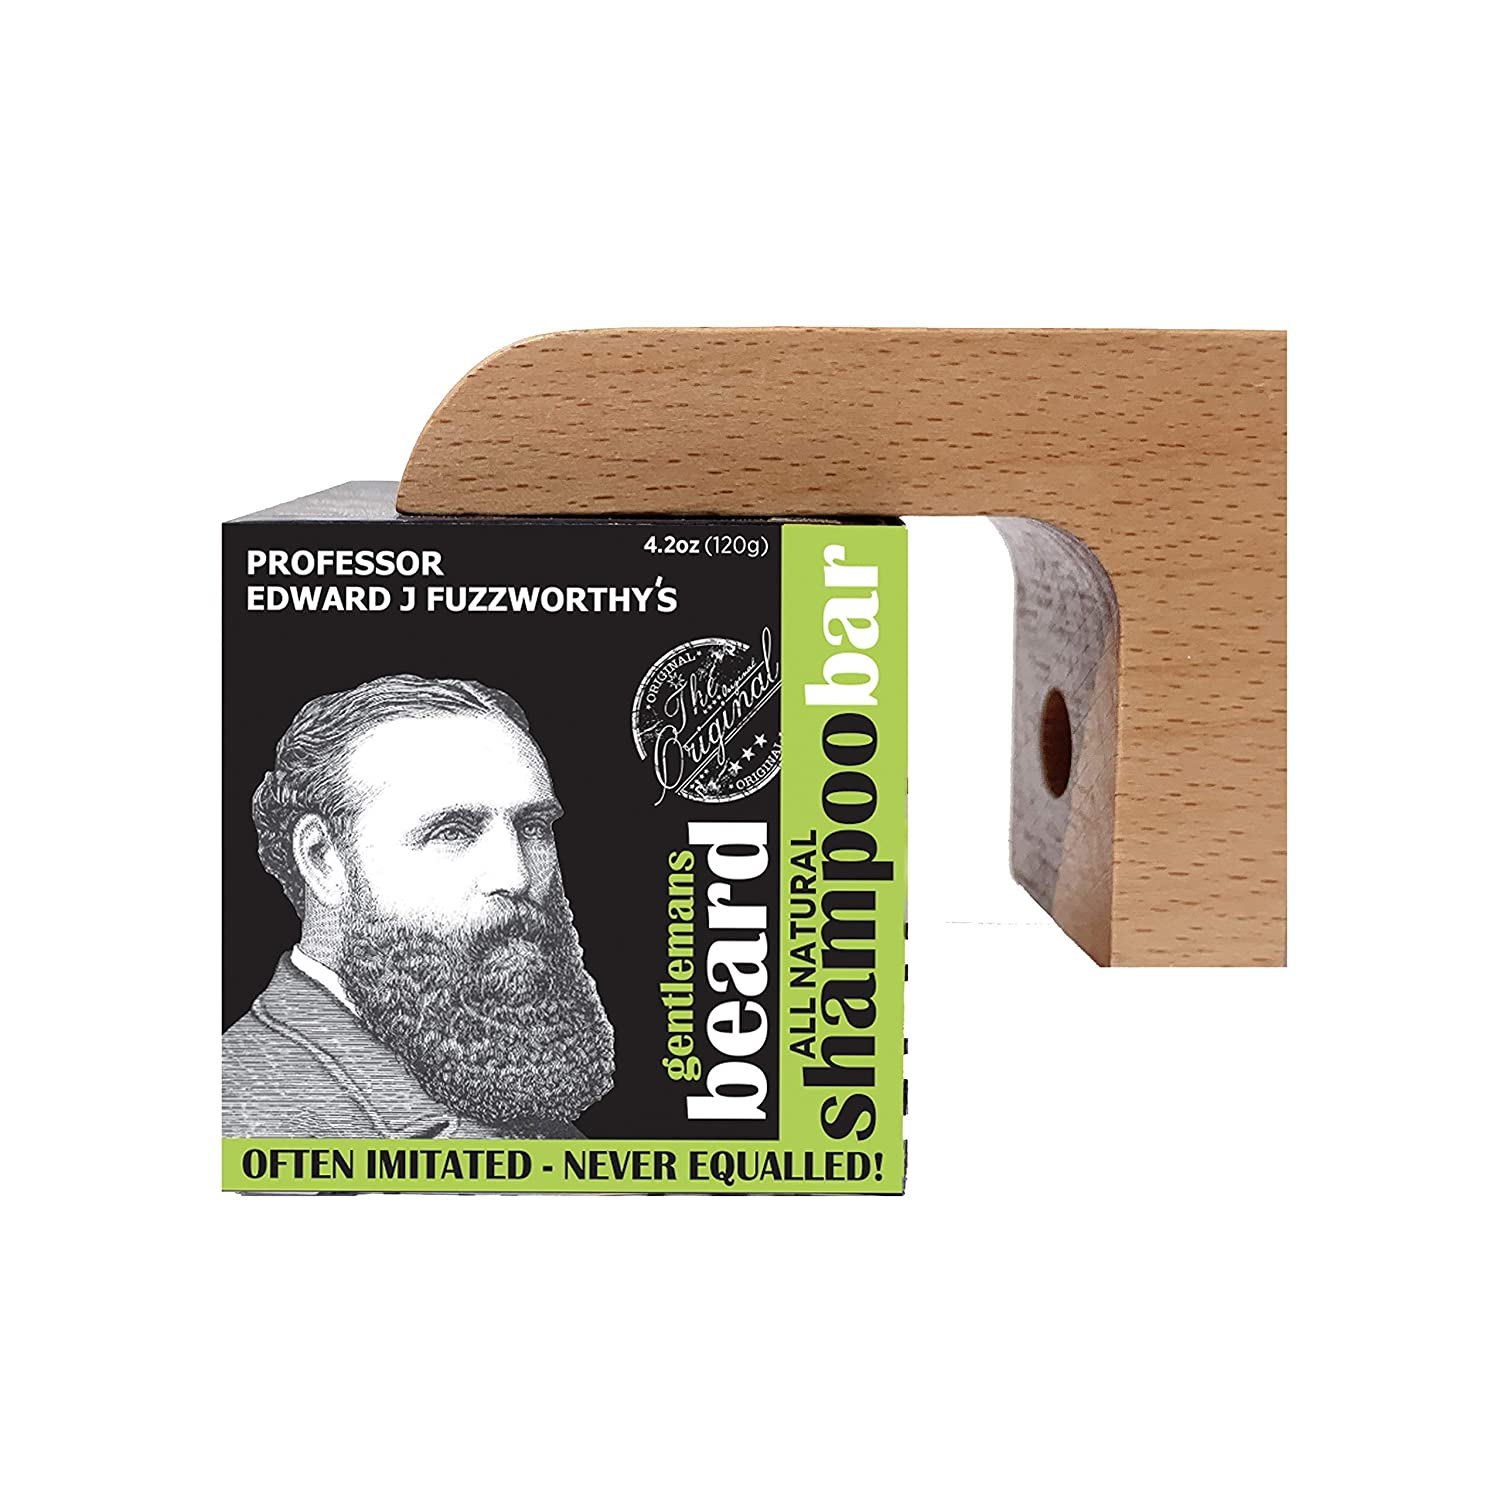 Professor Fuzzworthy's ACV Beard Shampoo Ba & Magnetic Soap Holder Men's Grooming Gift Kit | 100% Natural Beard Wash with Organic Ingredients- Eco Friendly Wooden Soap Dish Dispenser for Shower & Bath